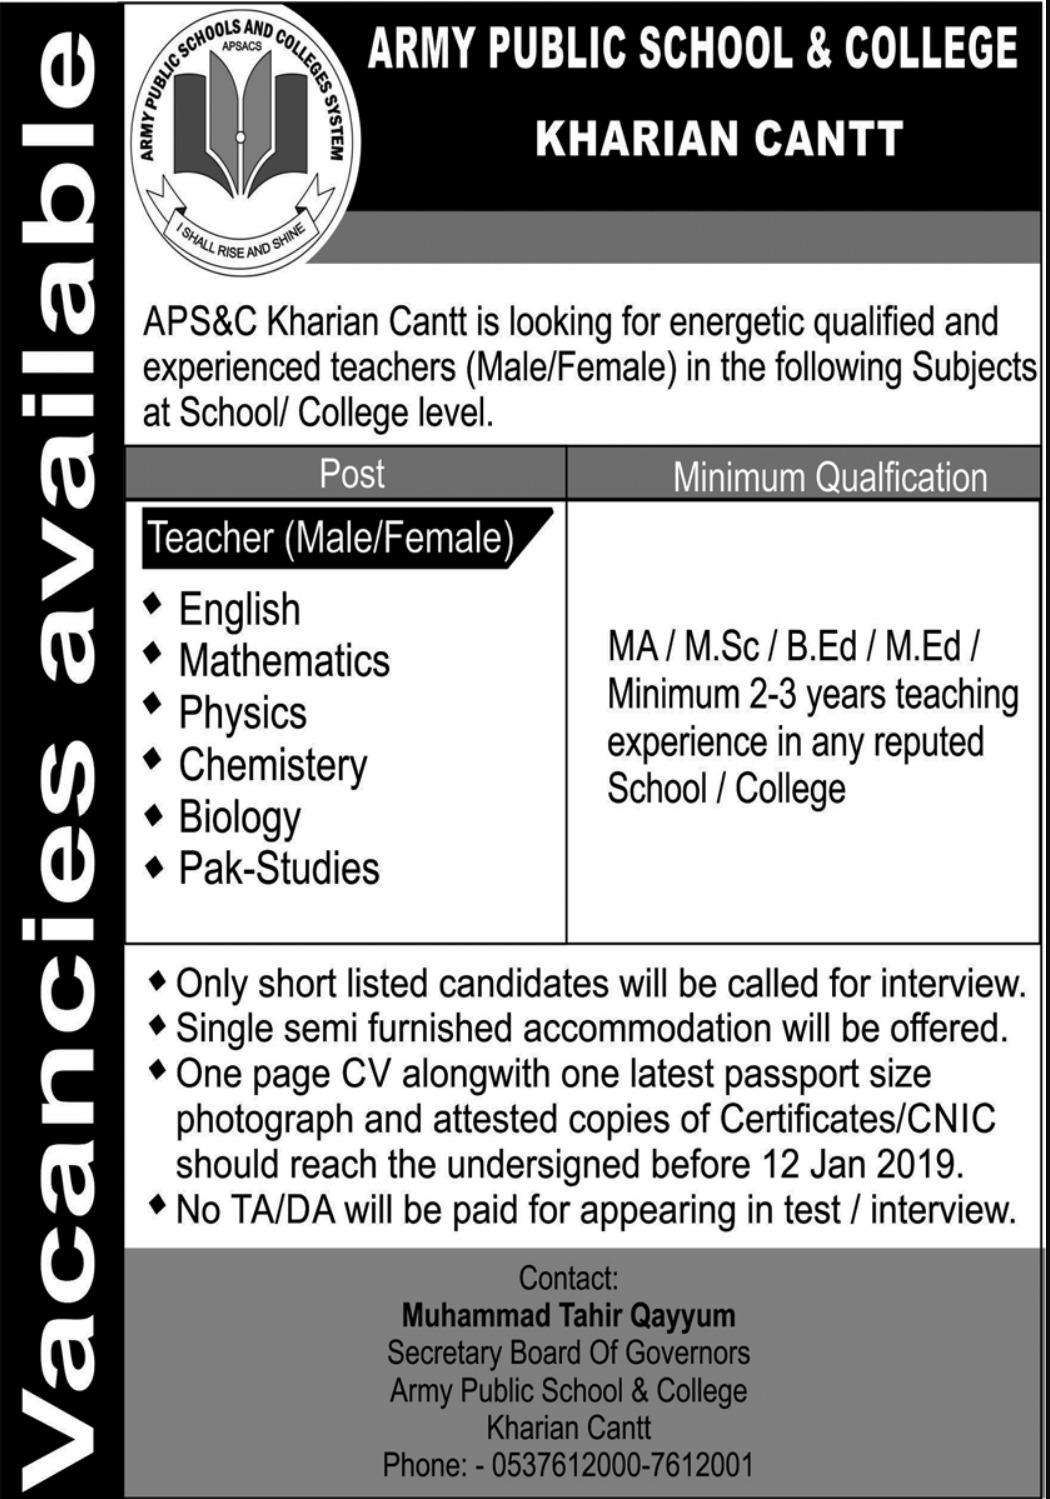 Army Public School & College Kharian Cantt Jobs 2019